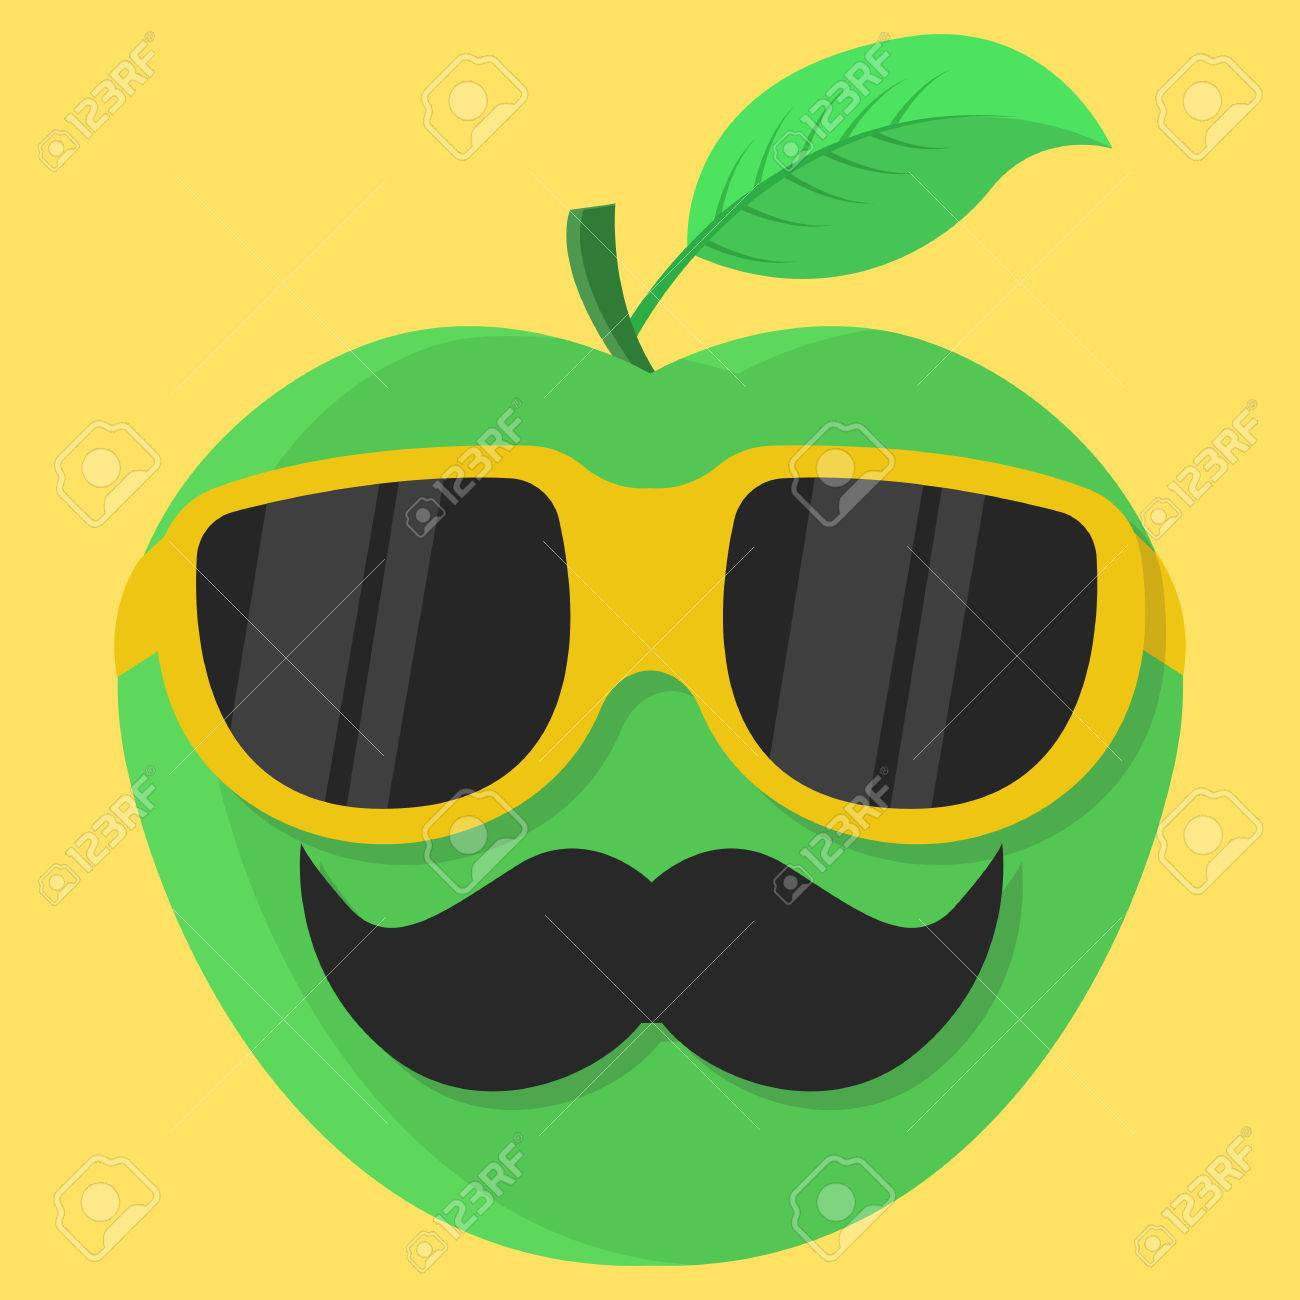 236bcd49d6bf2 Vector - Vector green apple cartoon. Apple with glasses. Apple with  mustache. Apple Fashion. Apple isolated. Apple icon.